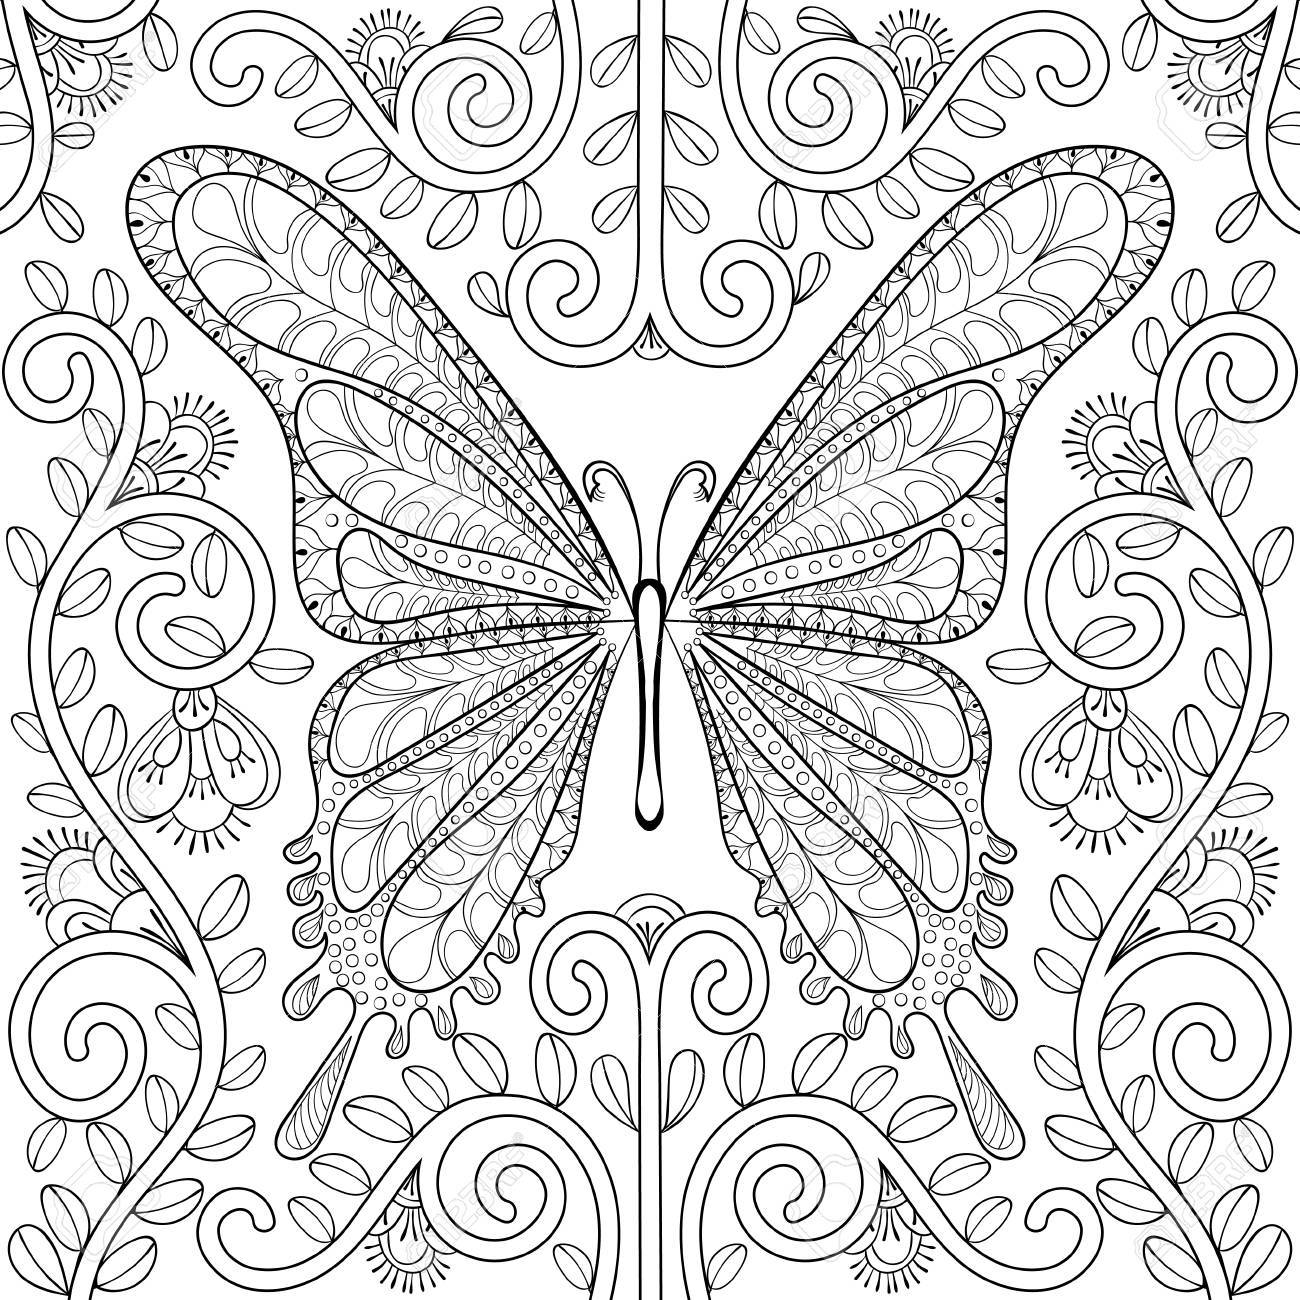 Adult coloring book with butterfly in flowers pages, zentangle..